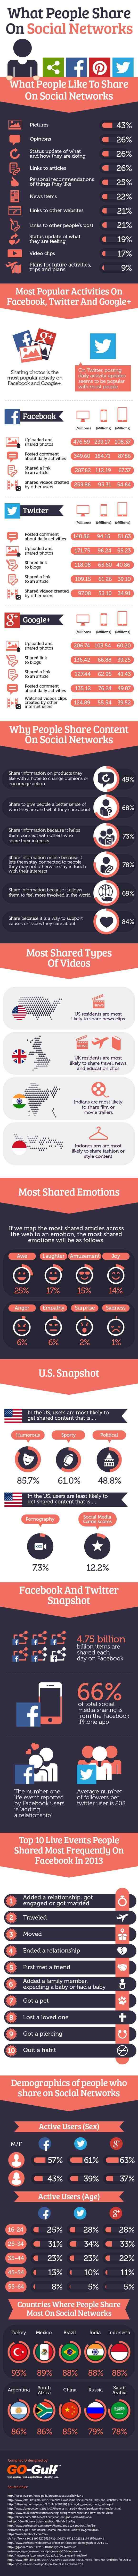 What And Why Do People Share On Social Networks?#Infographic